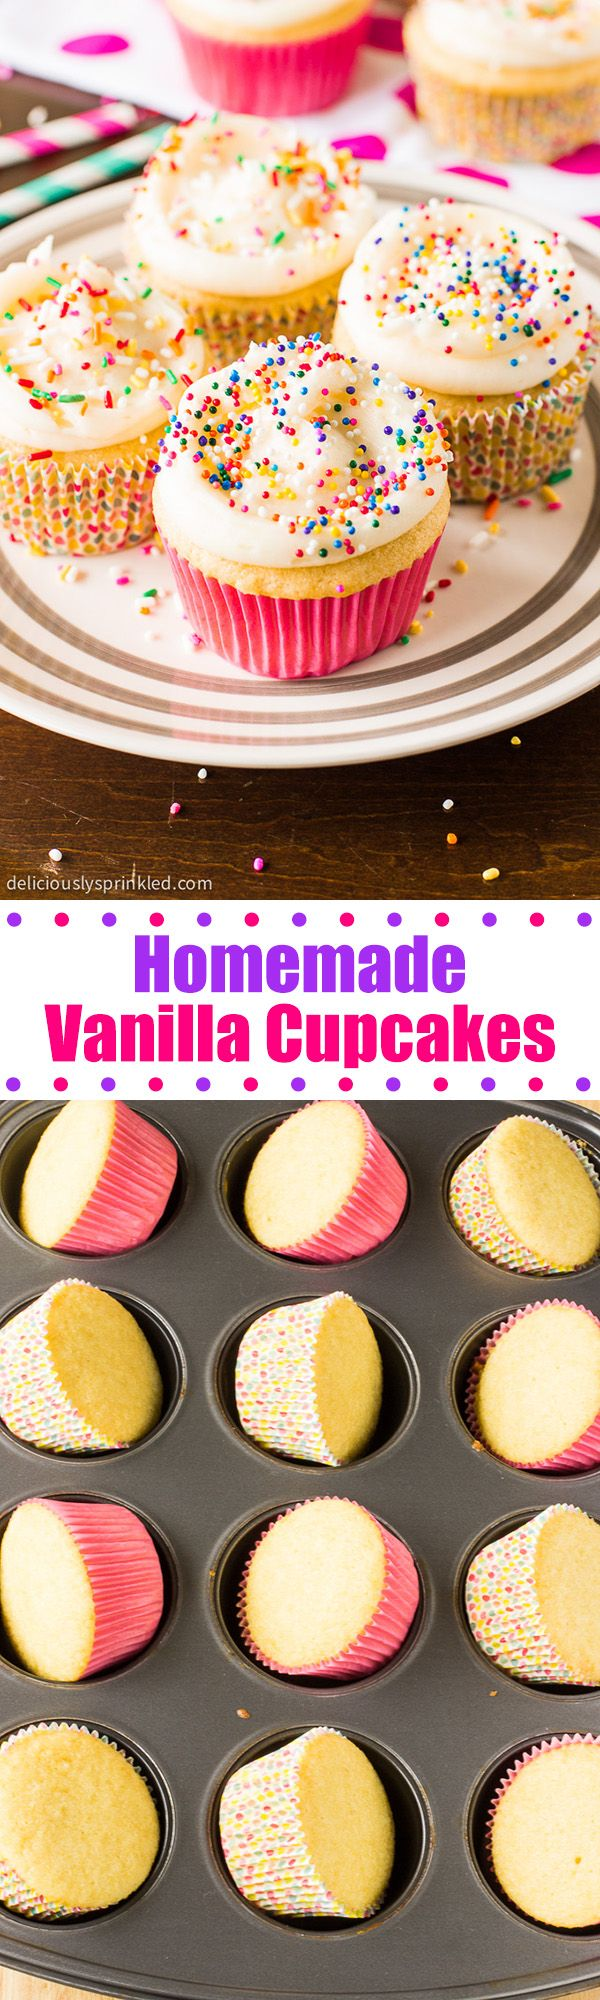 Homemade Vanilla Cupcakes (with frosting recipe) These are awesome! I might add in a little more flour and sugar